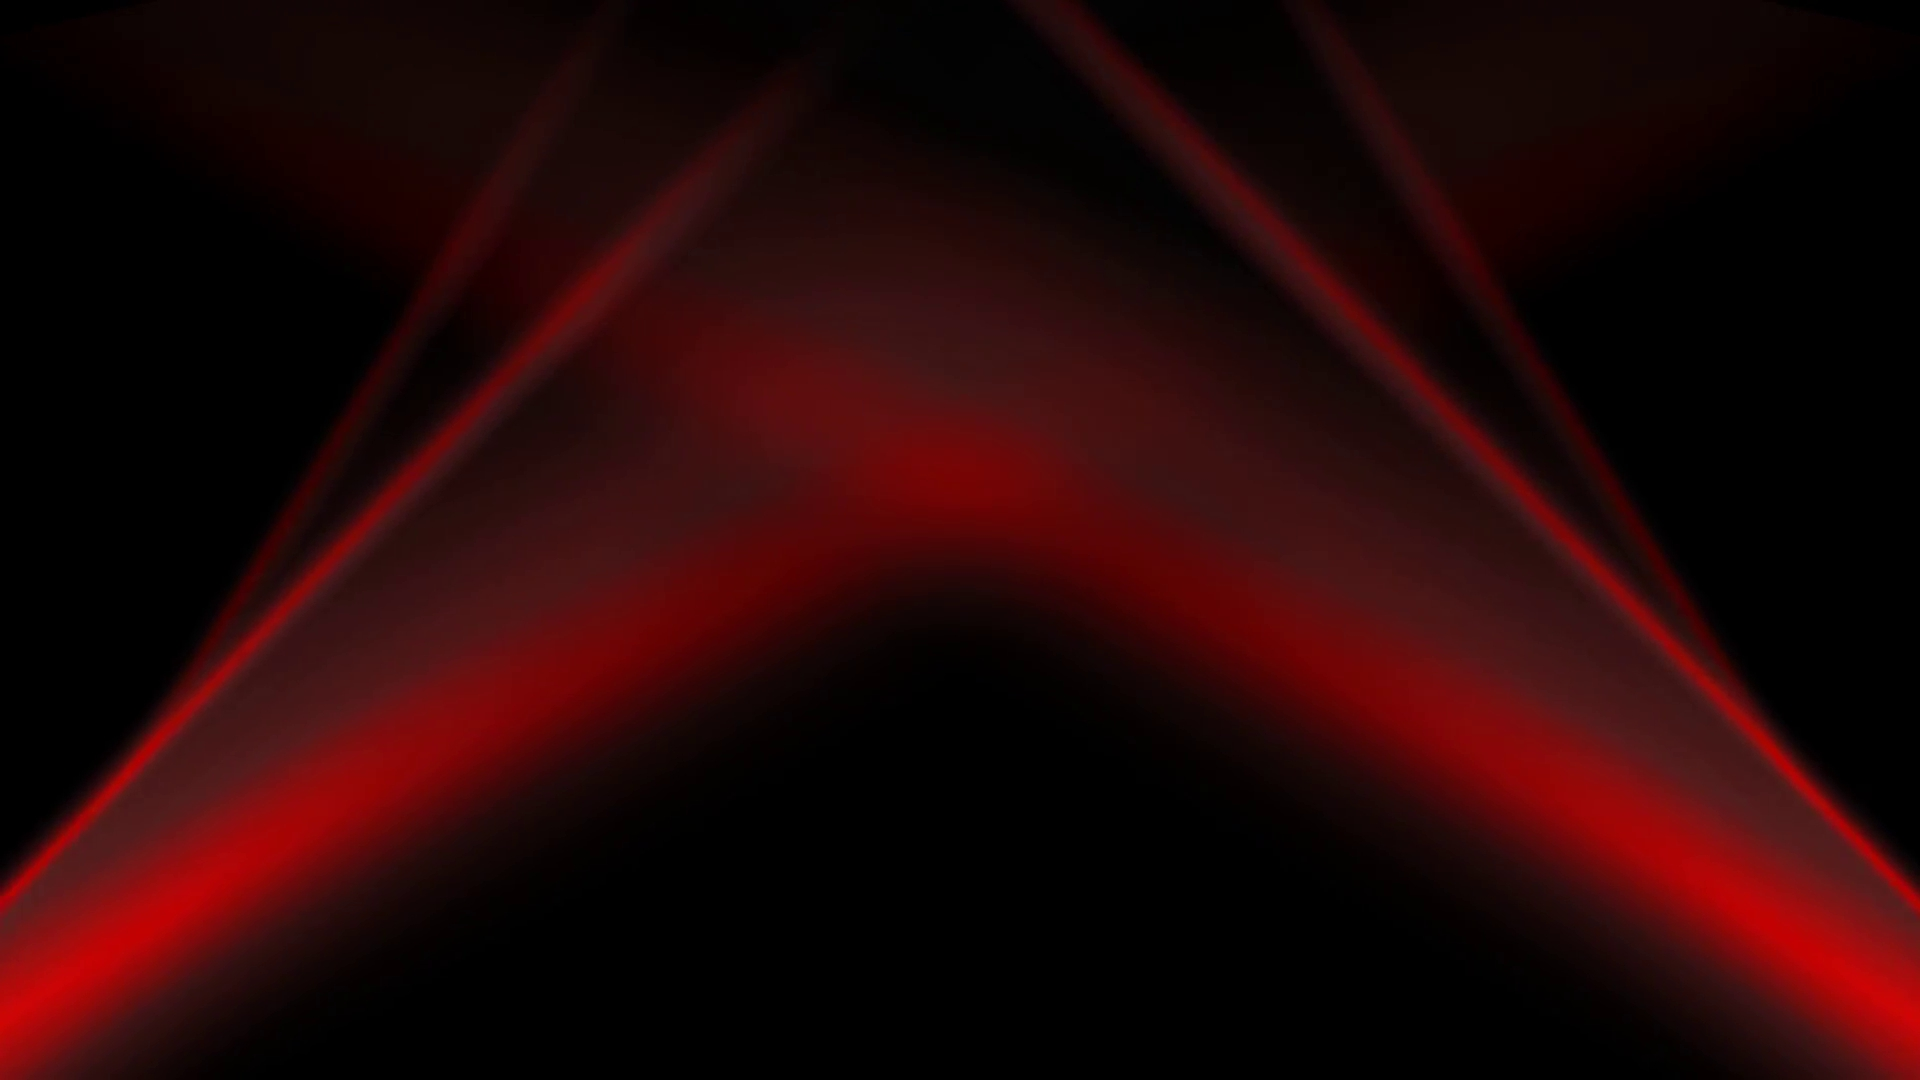 abstract dark animated background. glow red flowing wavy stripes on